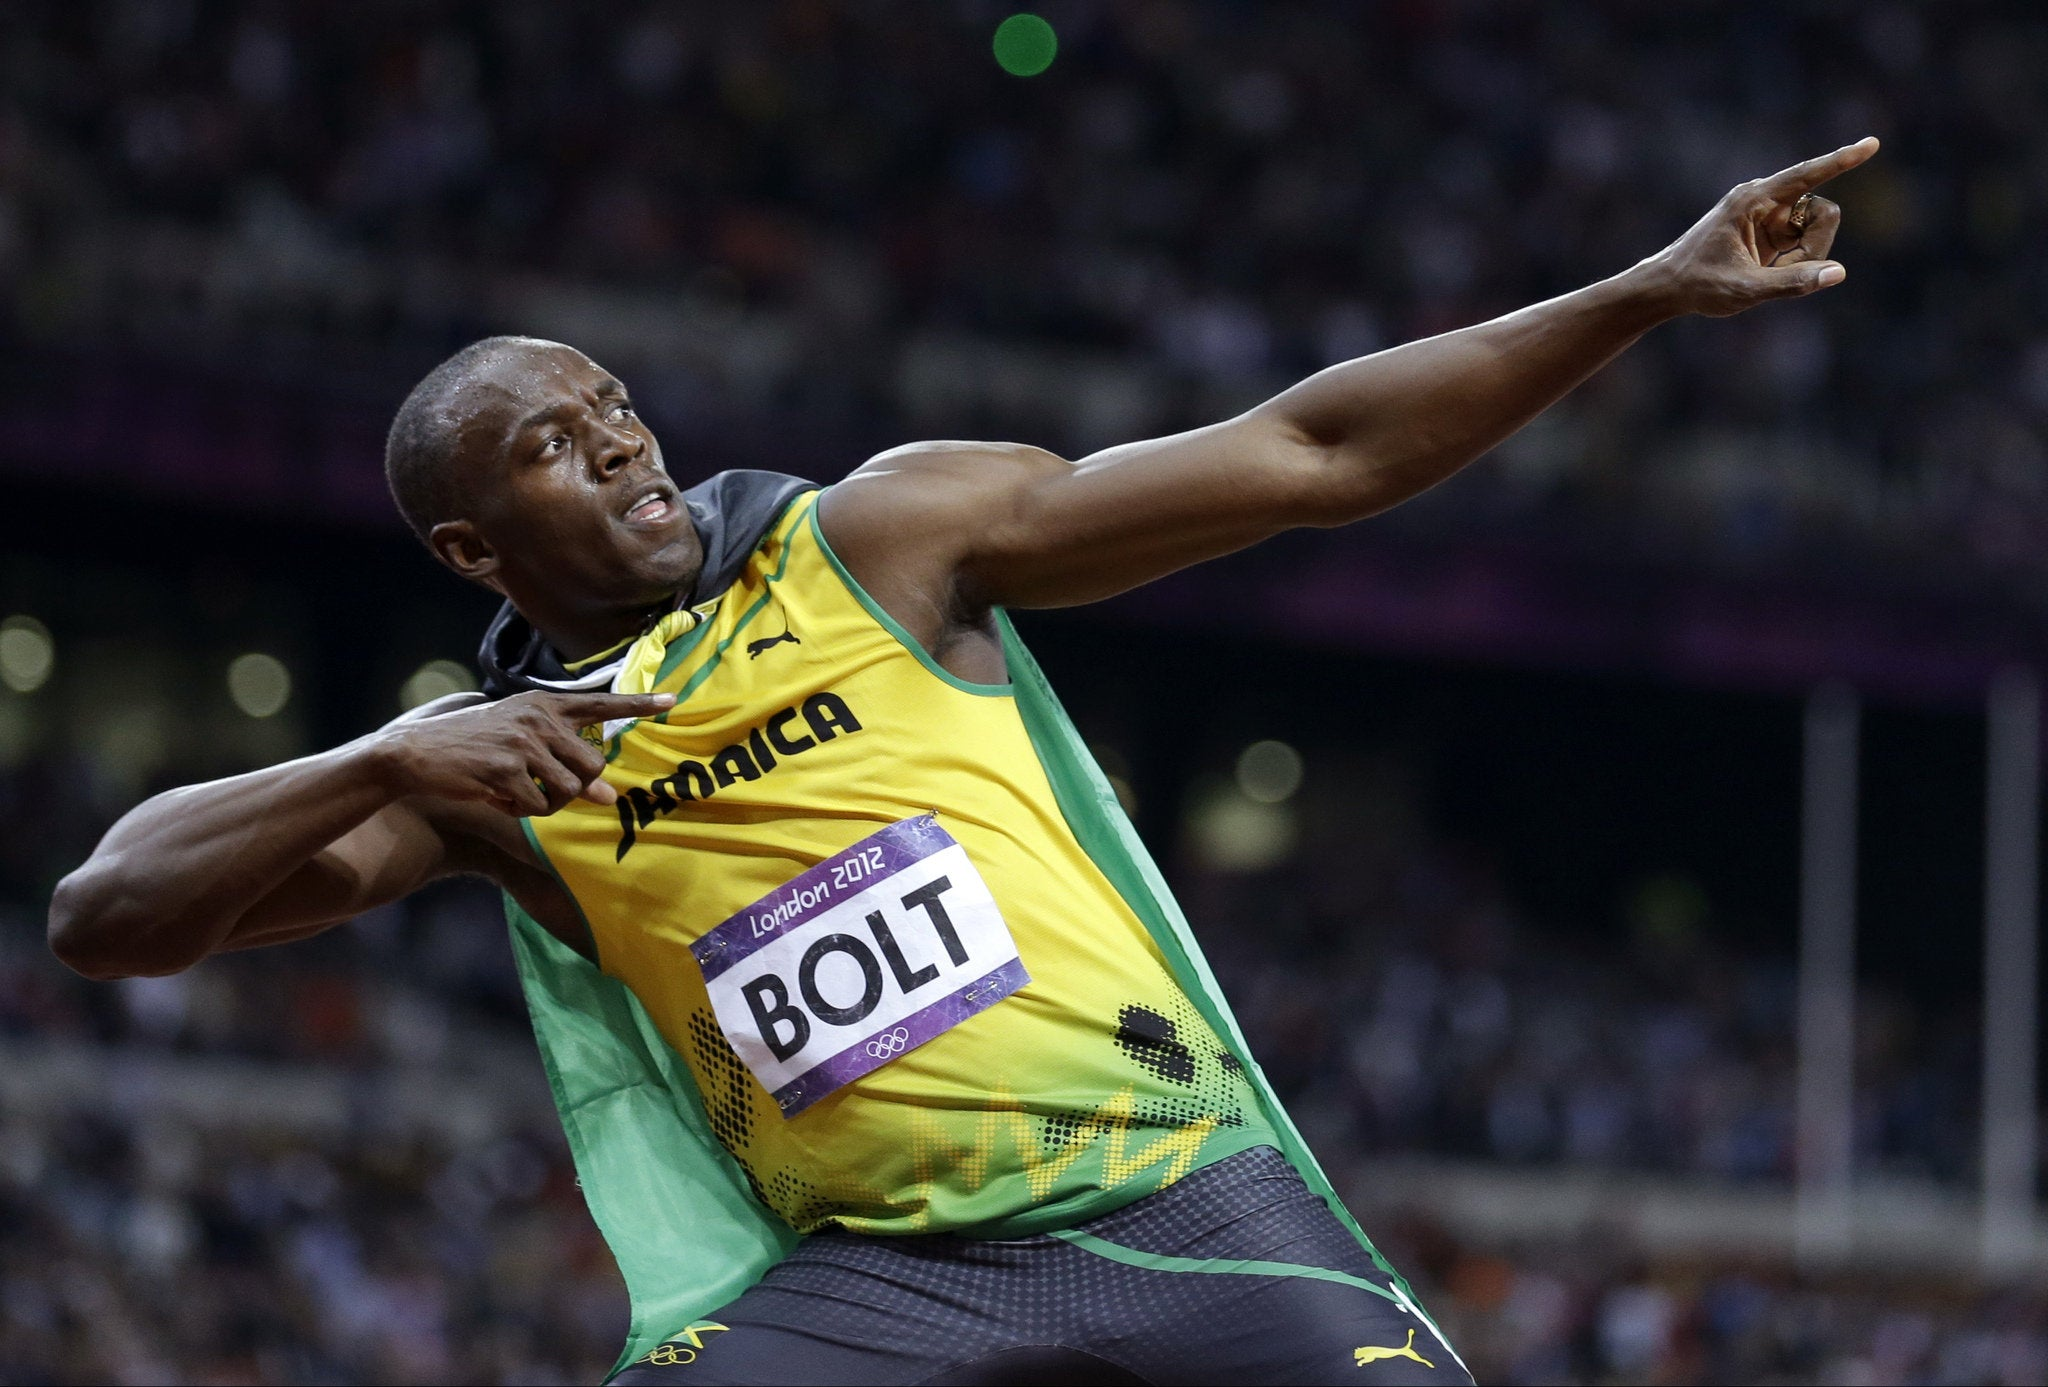 Usain Bolt at the London Olympics